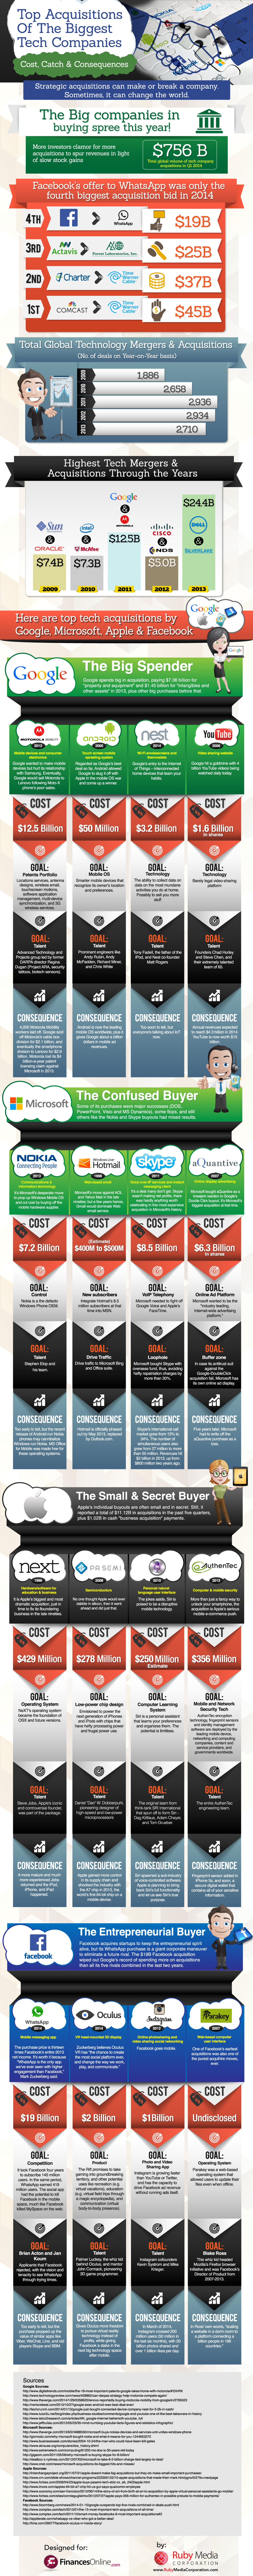 Top Technology Mergers & Acquisitions: What Companies Facebook, Google, Microsoft and Apple Spend Billions For